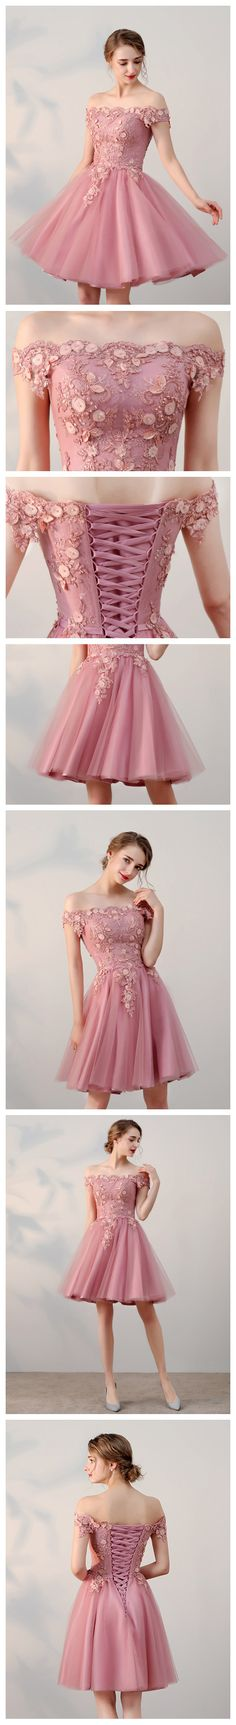 Chic Homecoming Dresses A-line Off-the-shoulder Halter Pink Applique Lace Tulle Homecoming Dress Short Prom Dress SM038